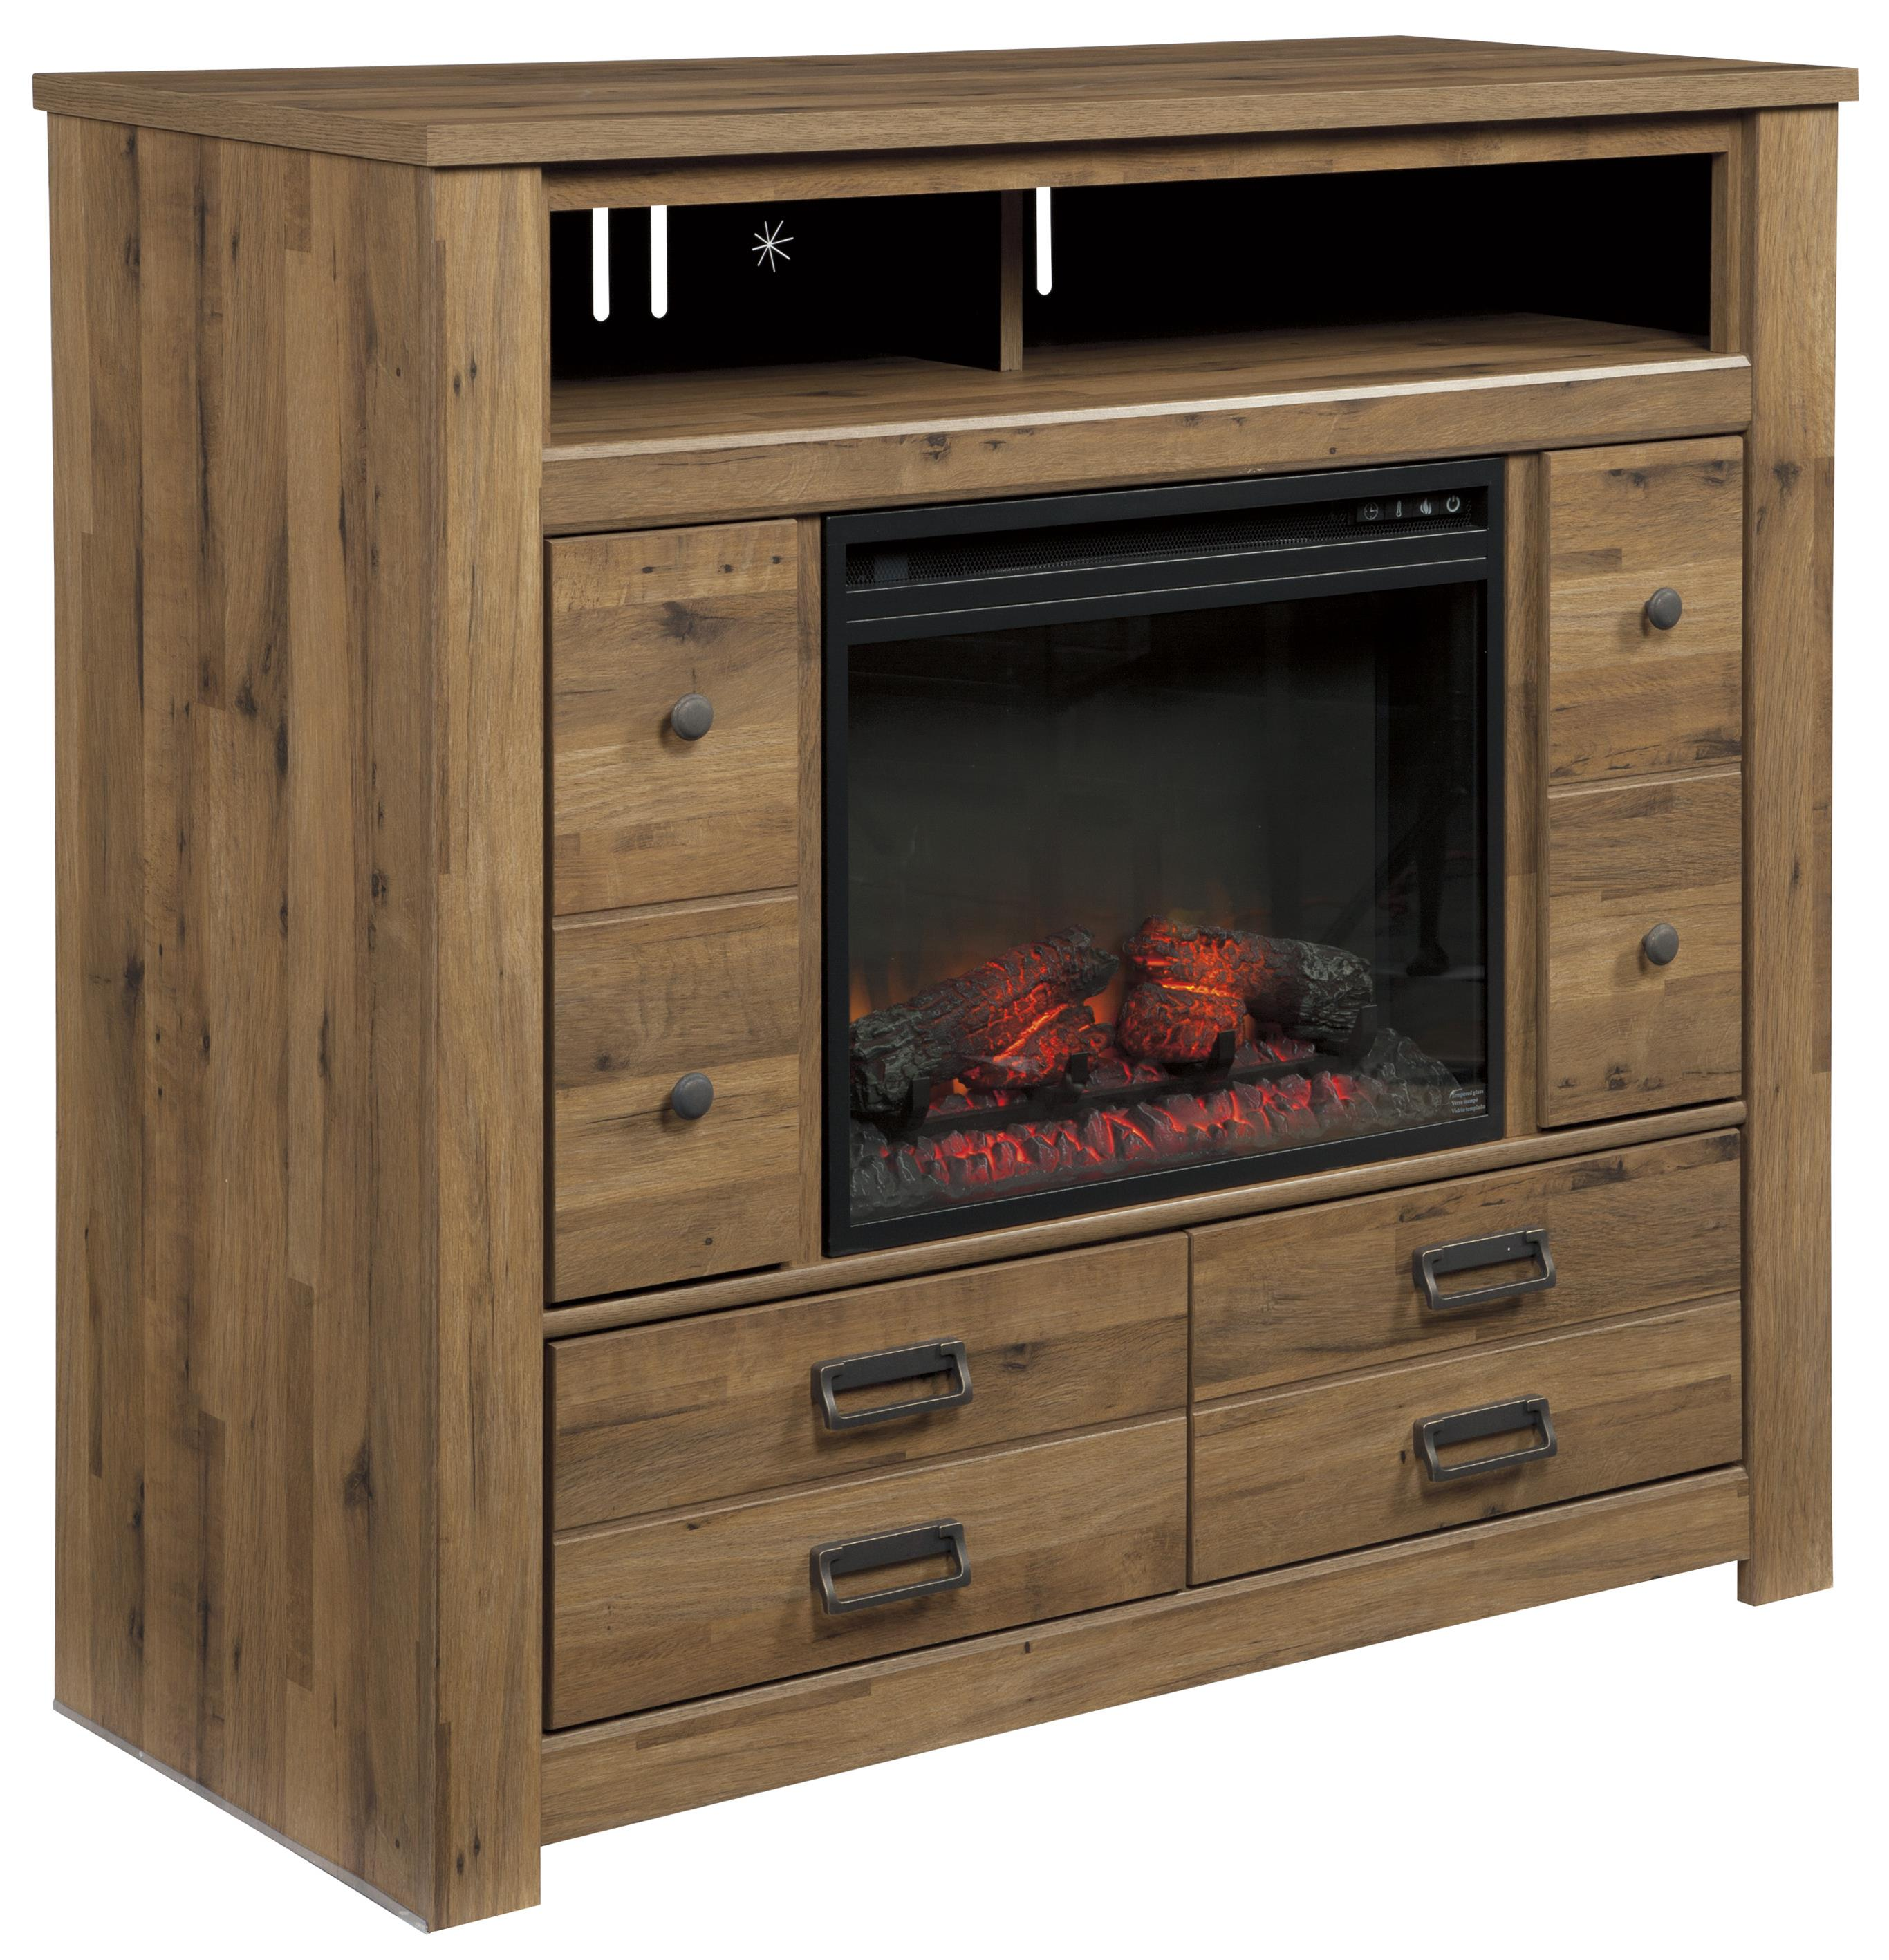 Signature Design by Ashley Cinrey Media Chest with Fireplace Insert - Item Number: B369-49+W100-01